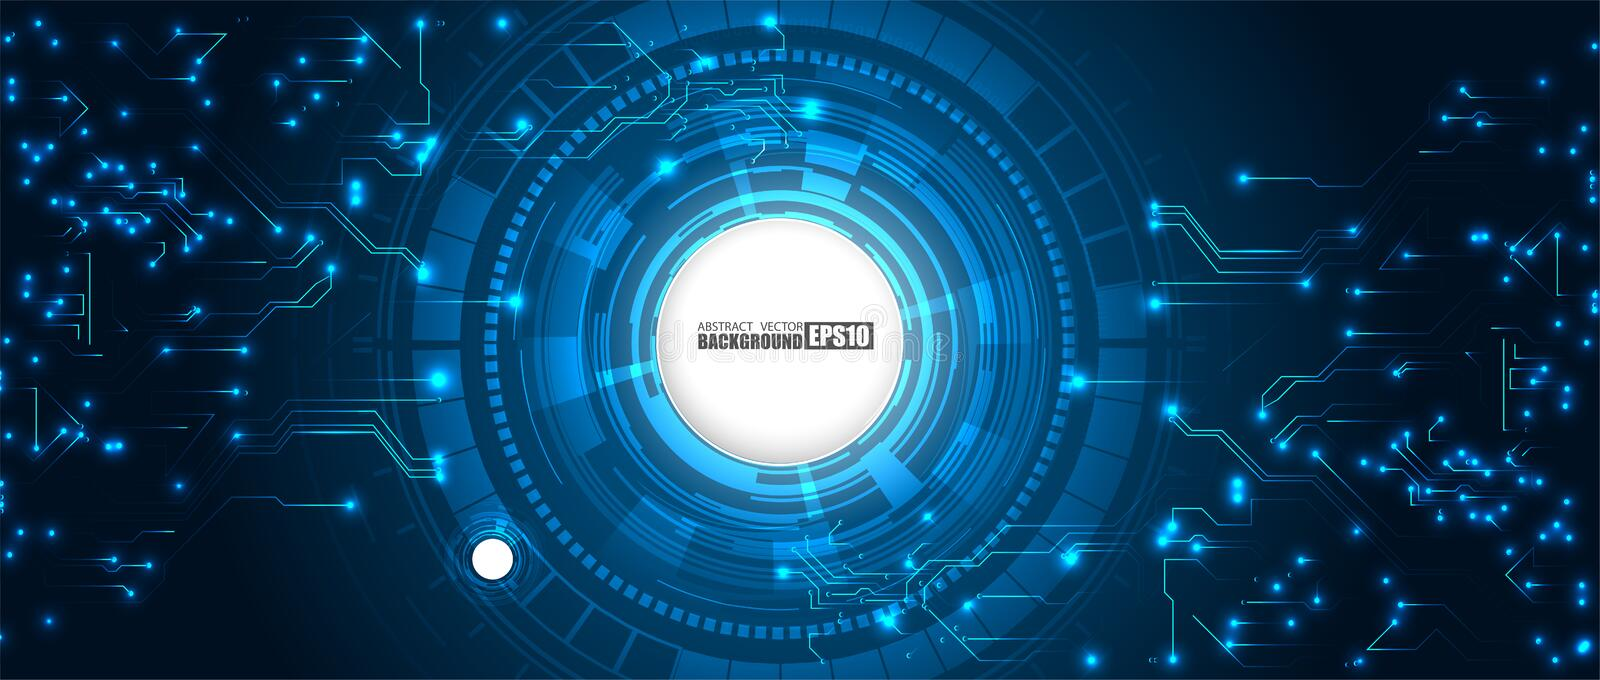 Abstract technology HUD background Hi-tech communication concept futuristic digital innovation background vector illustration